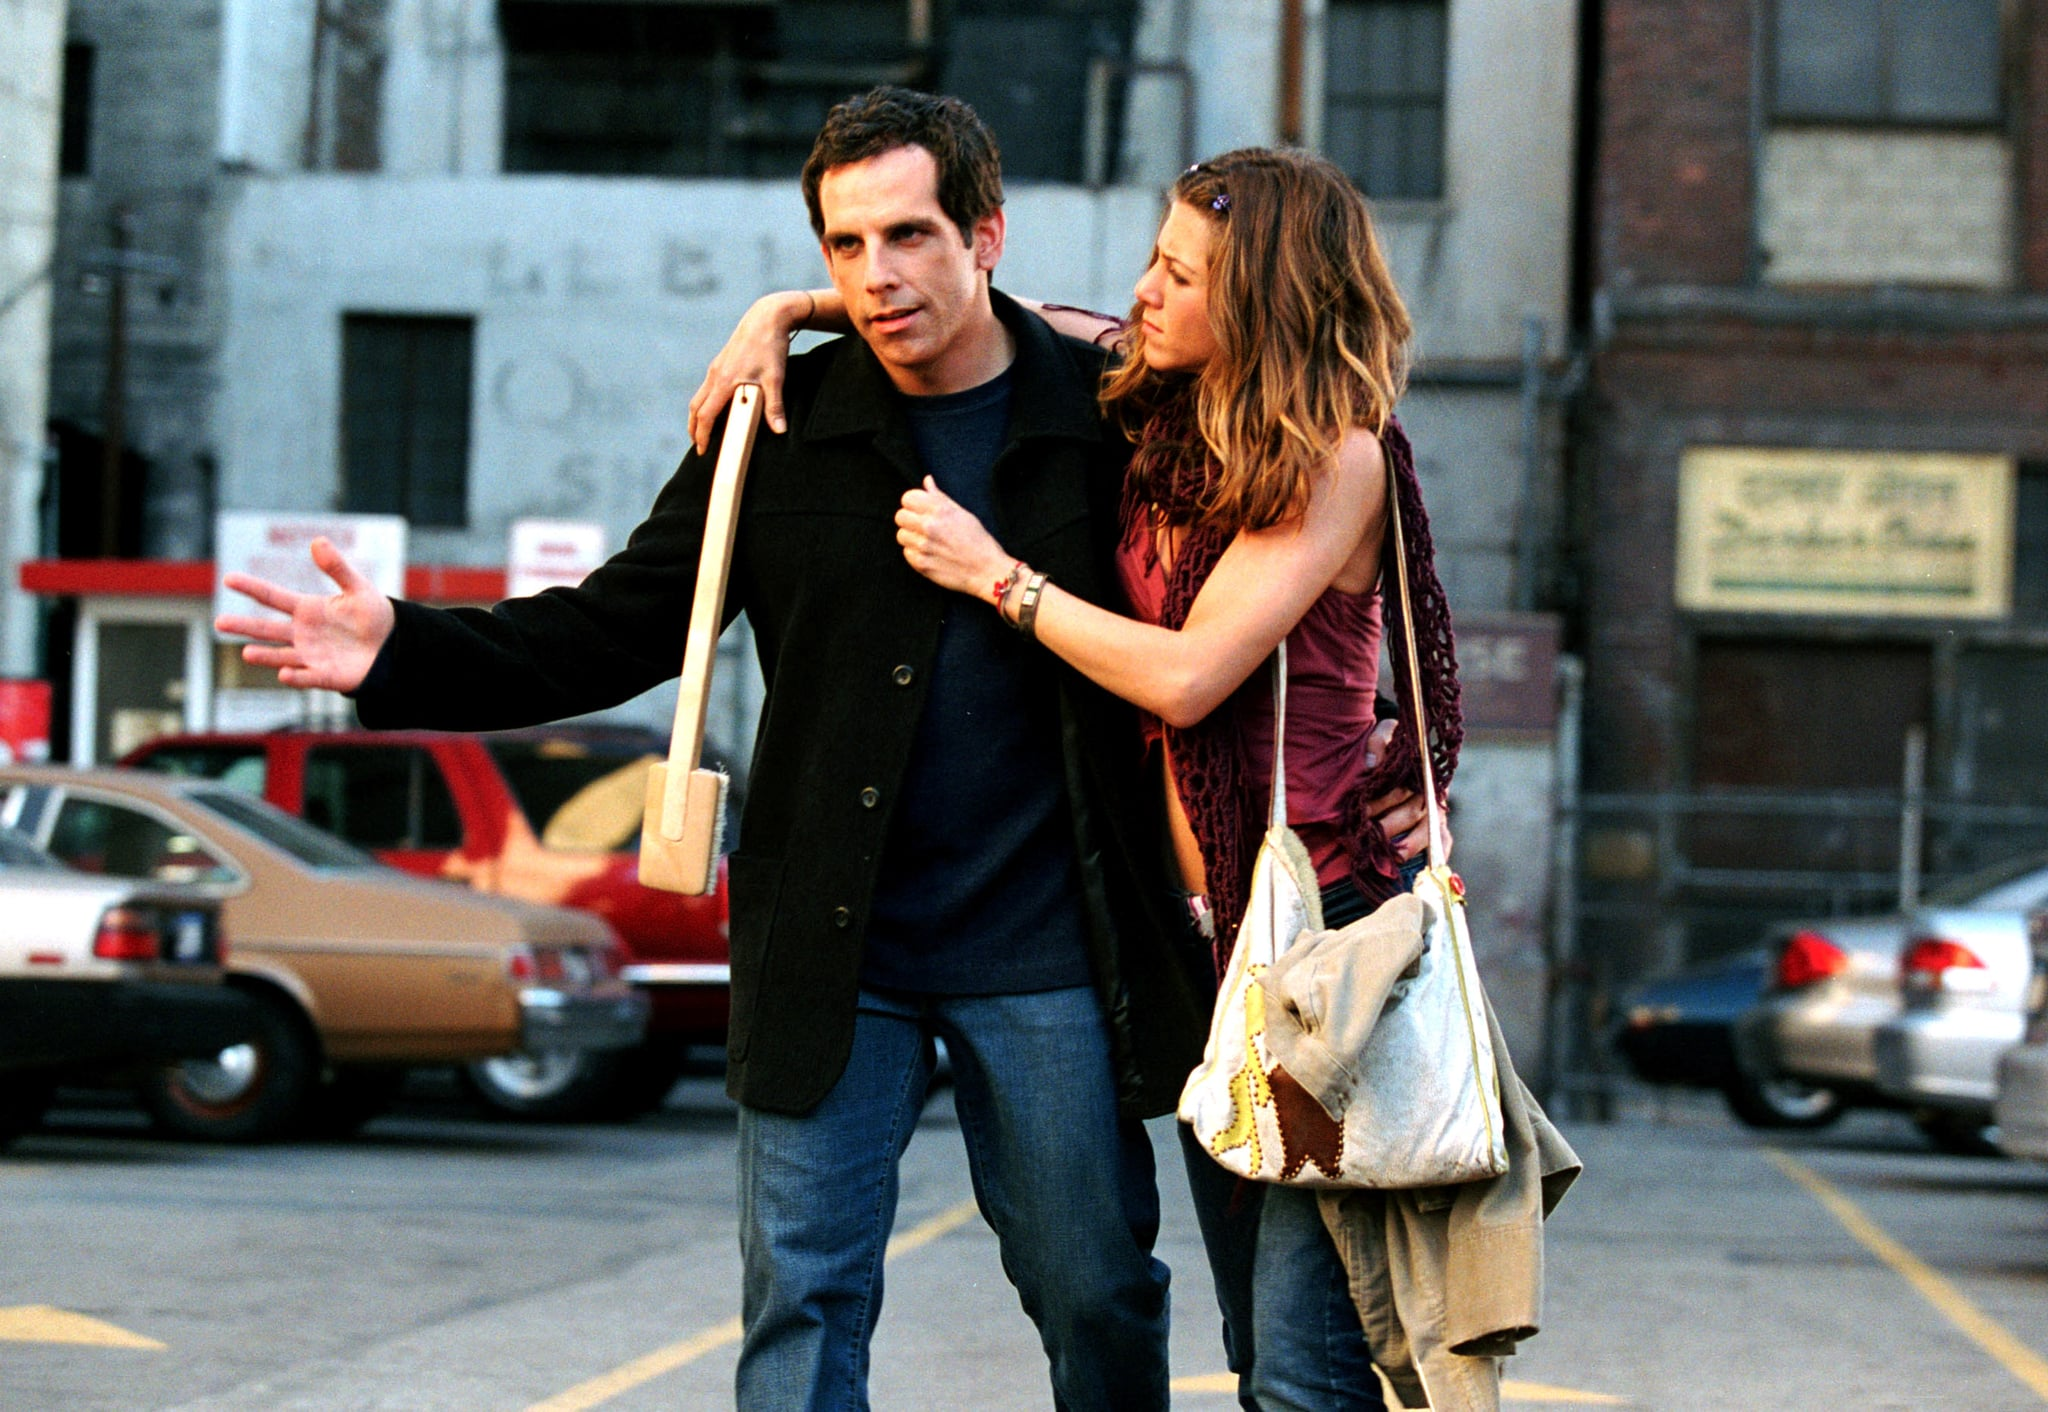 ALONG CAME POLLY, Ben Stiller, Jennifer Aniston, 2004, (c) Universal/courtesy Everett Collection